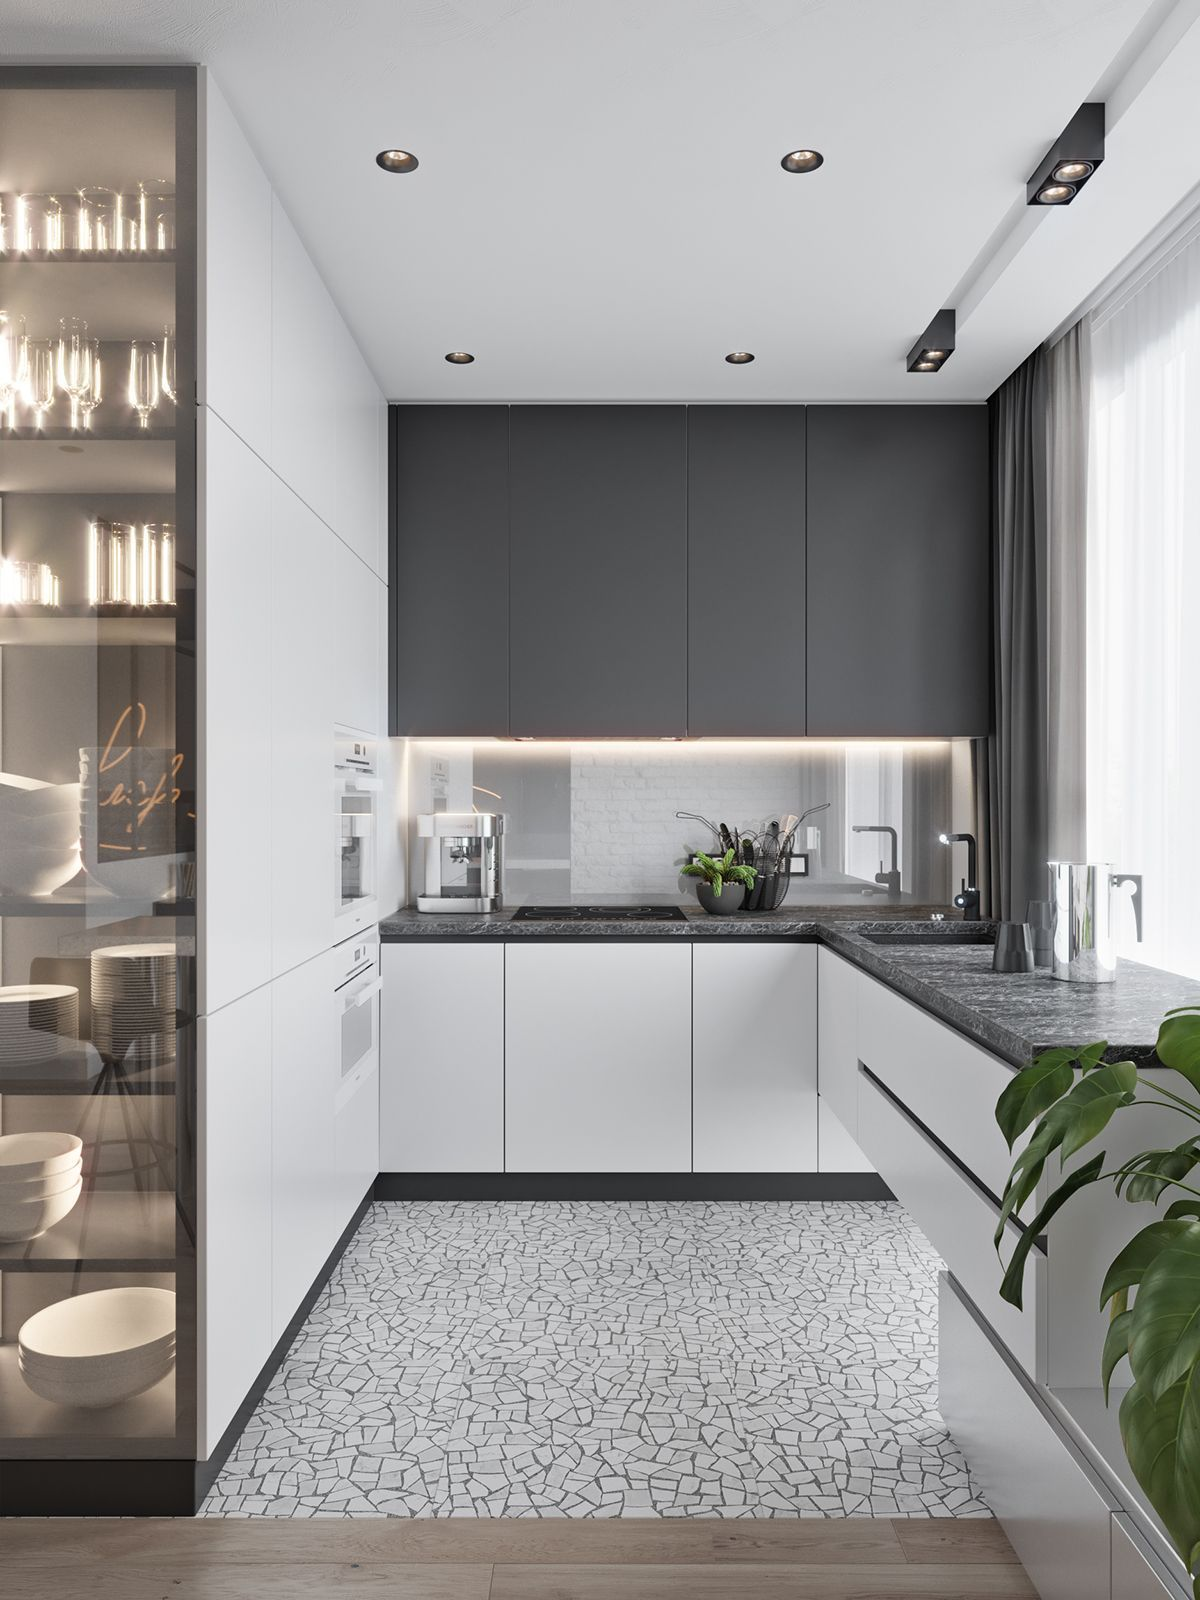 These minimalist kitchen ideas are equal components calm